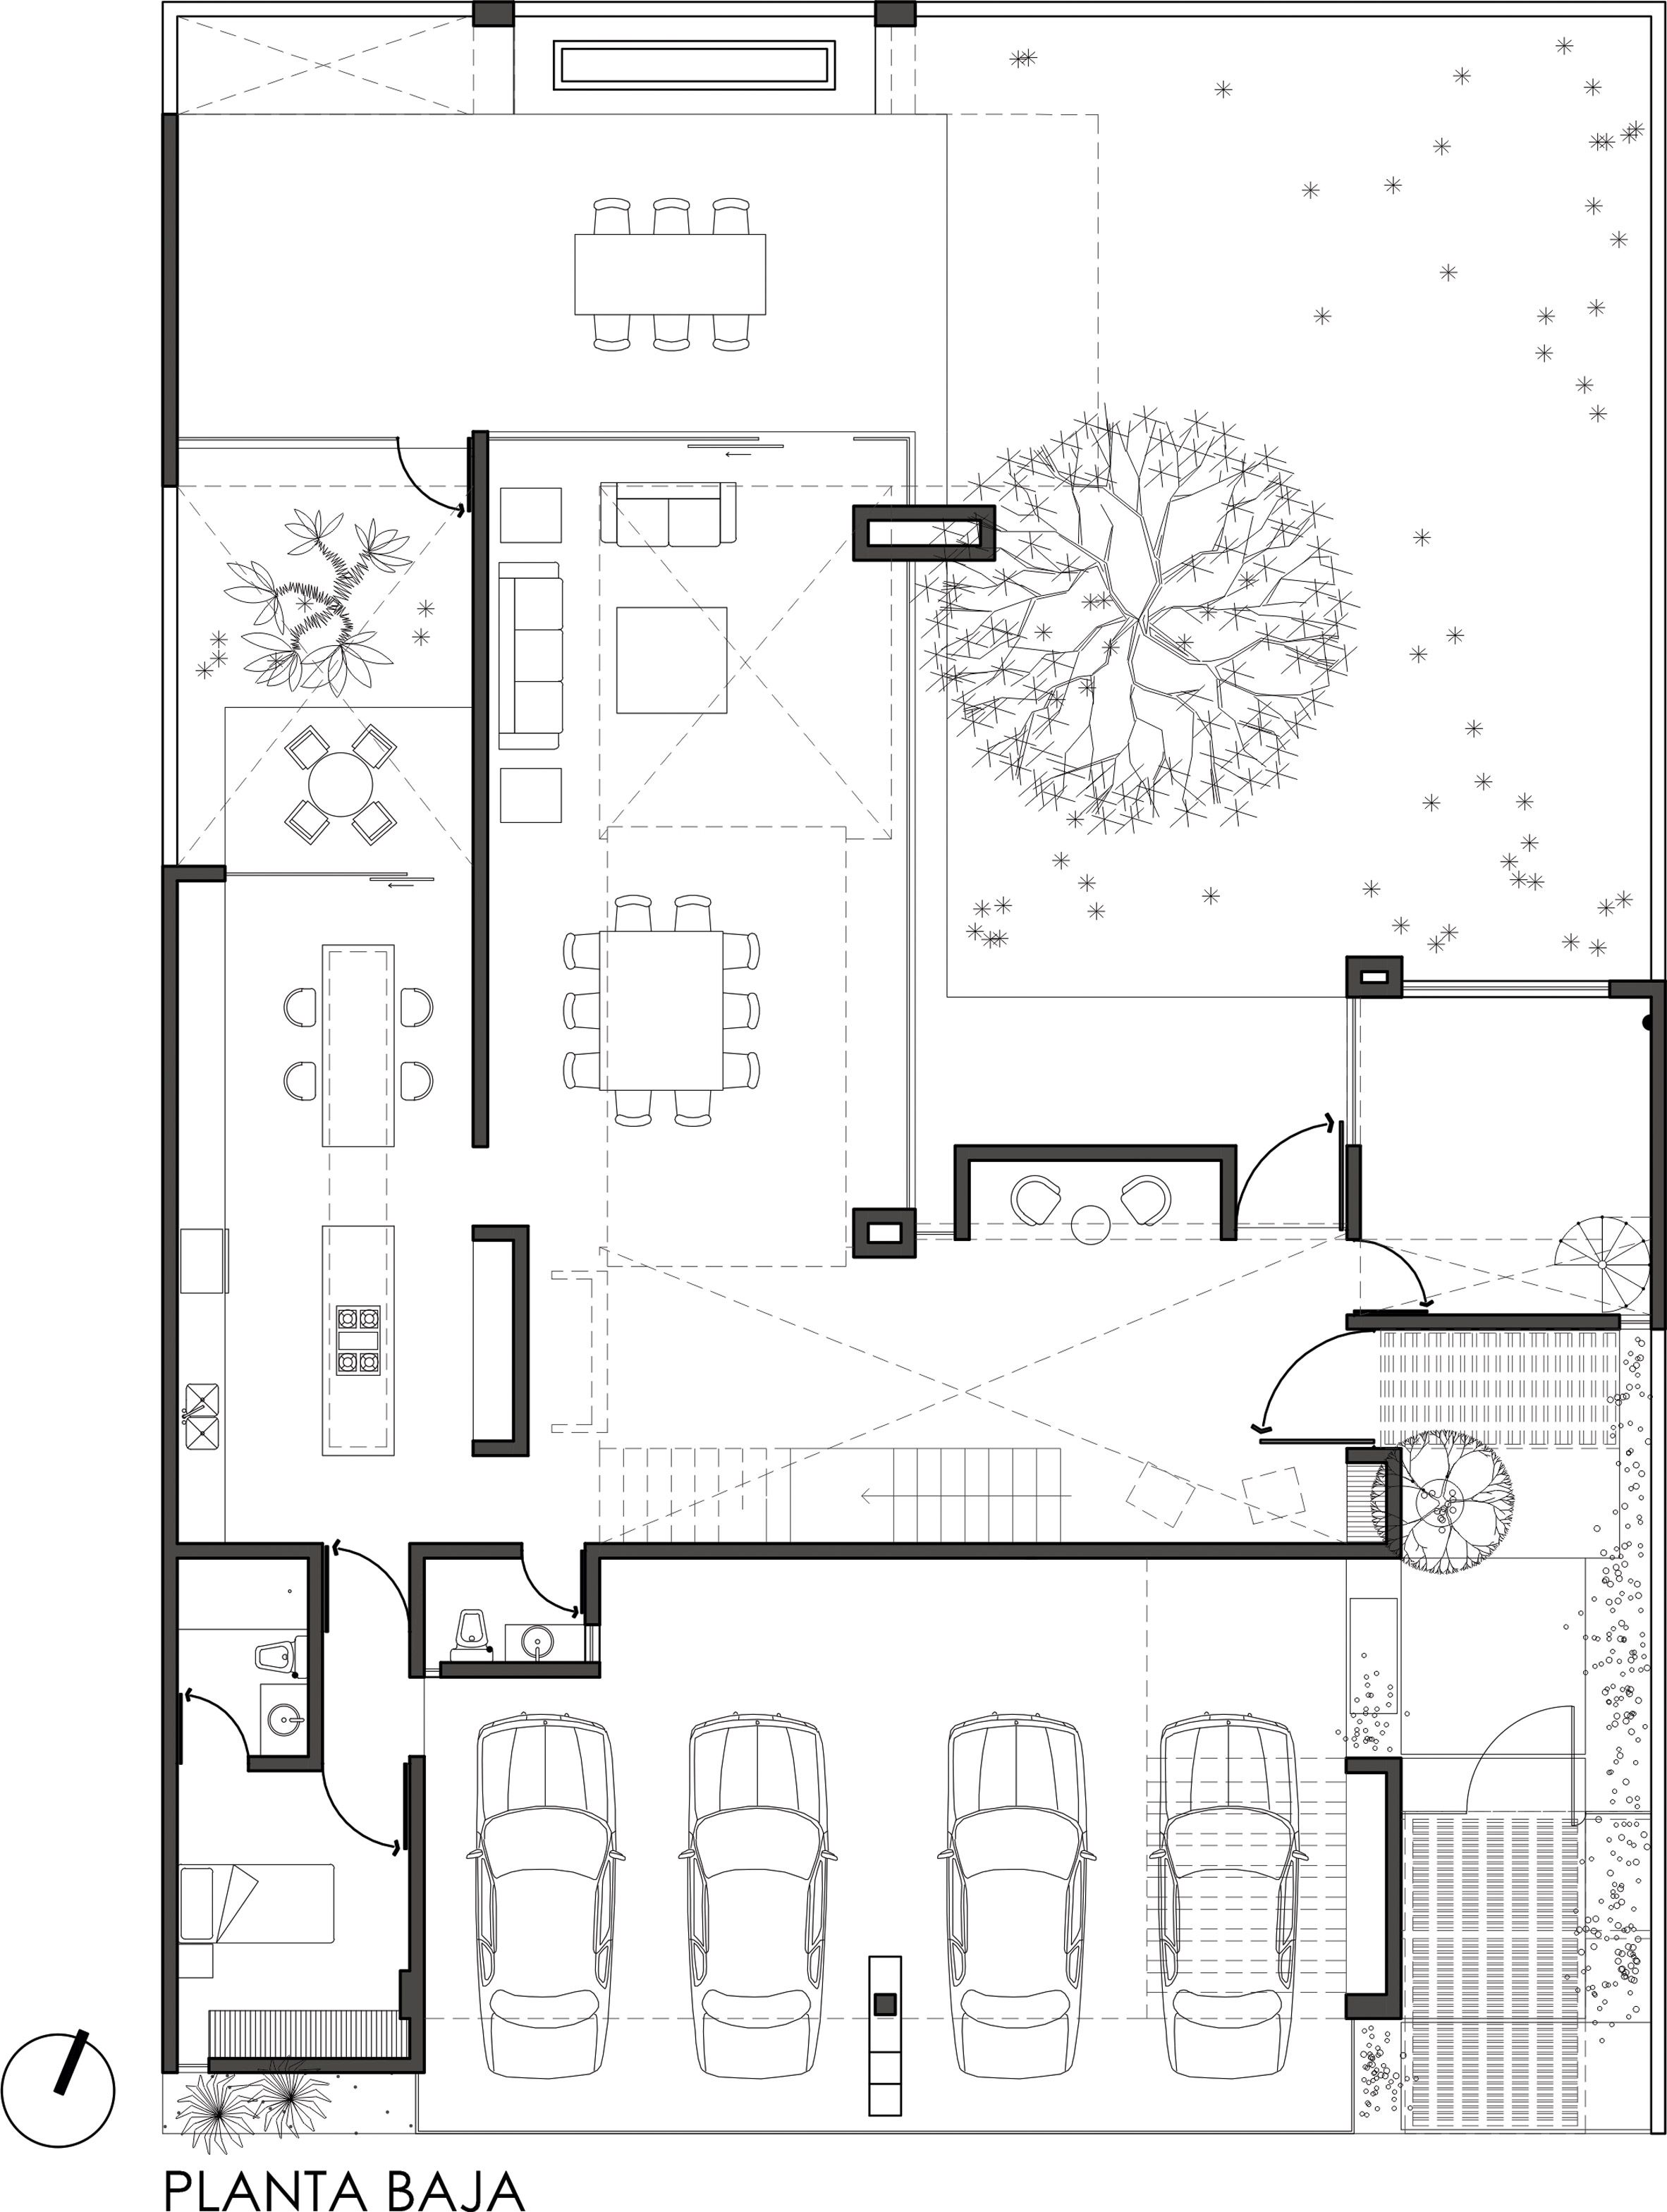 Mesquite Tree Serves As Focal Point For Mexican Home By Bag Arquitectura Drawing House Plans Craftsman Floor Plans House Layouts